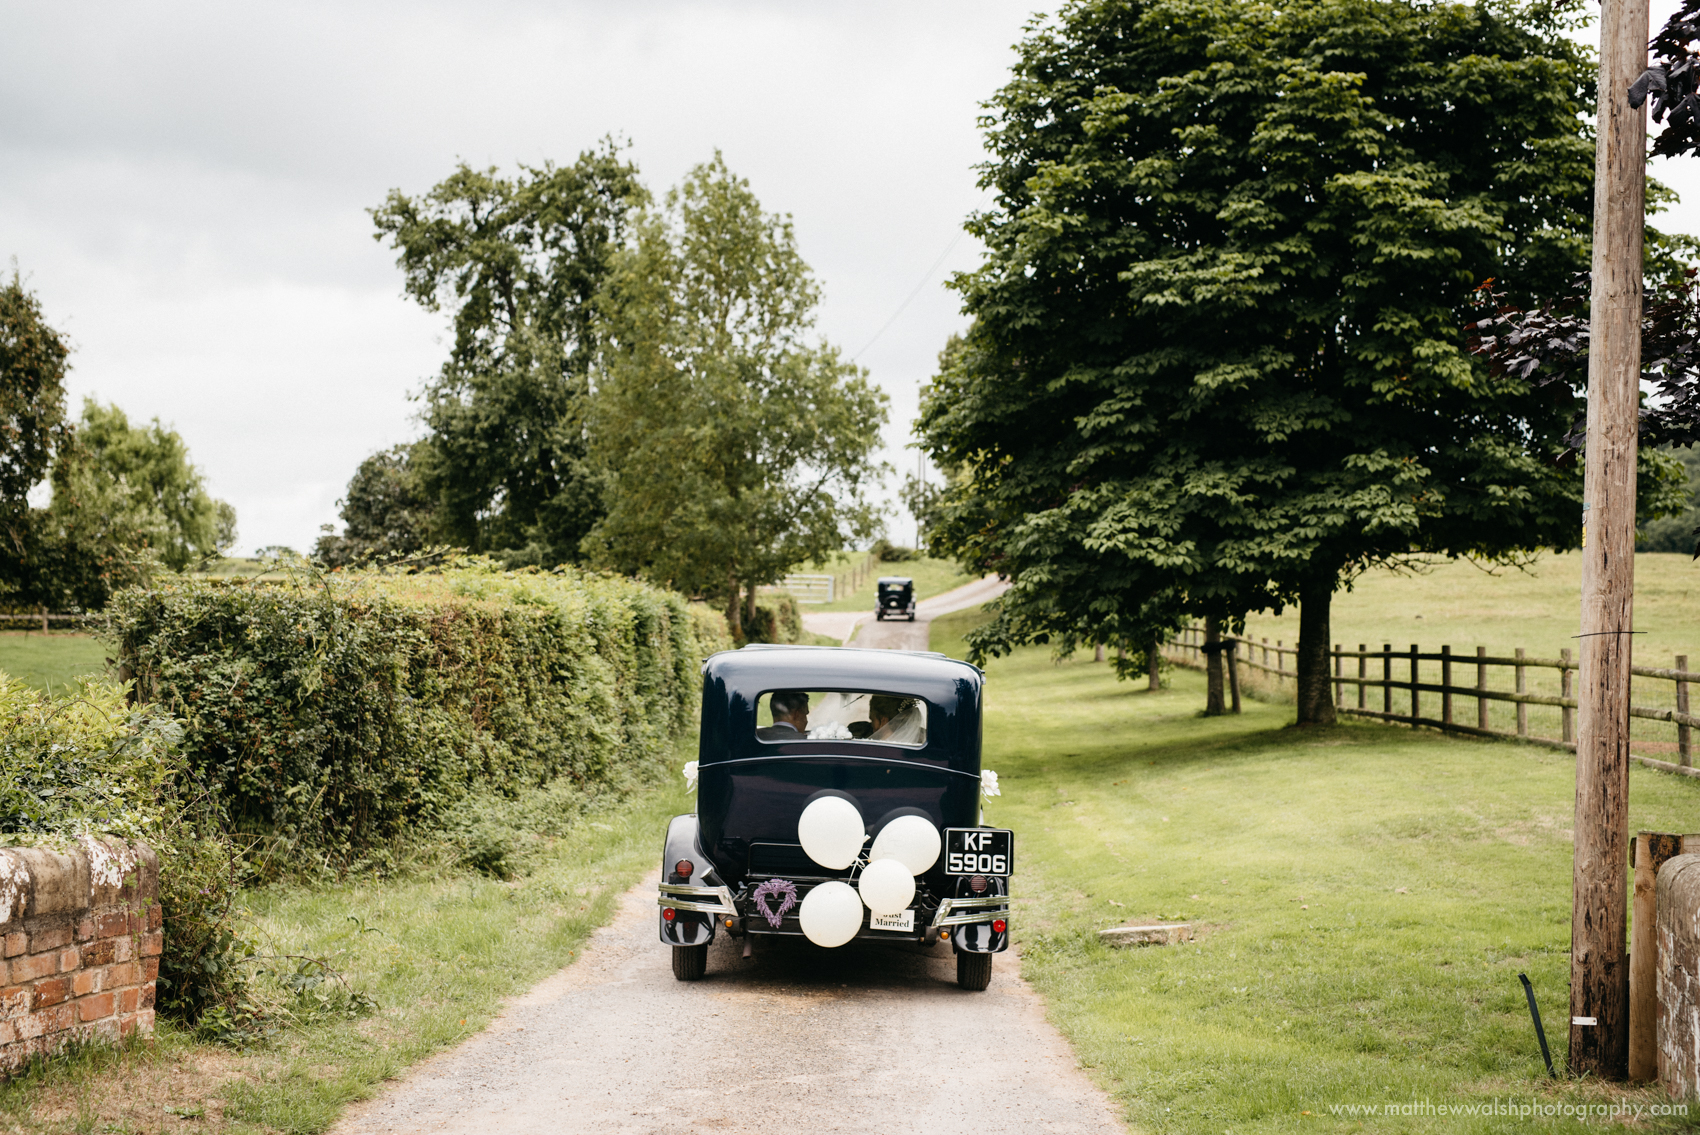 Wedding cars setting off from the church to the reception venue, a story telling moment to create a transition between venues